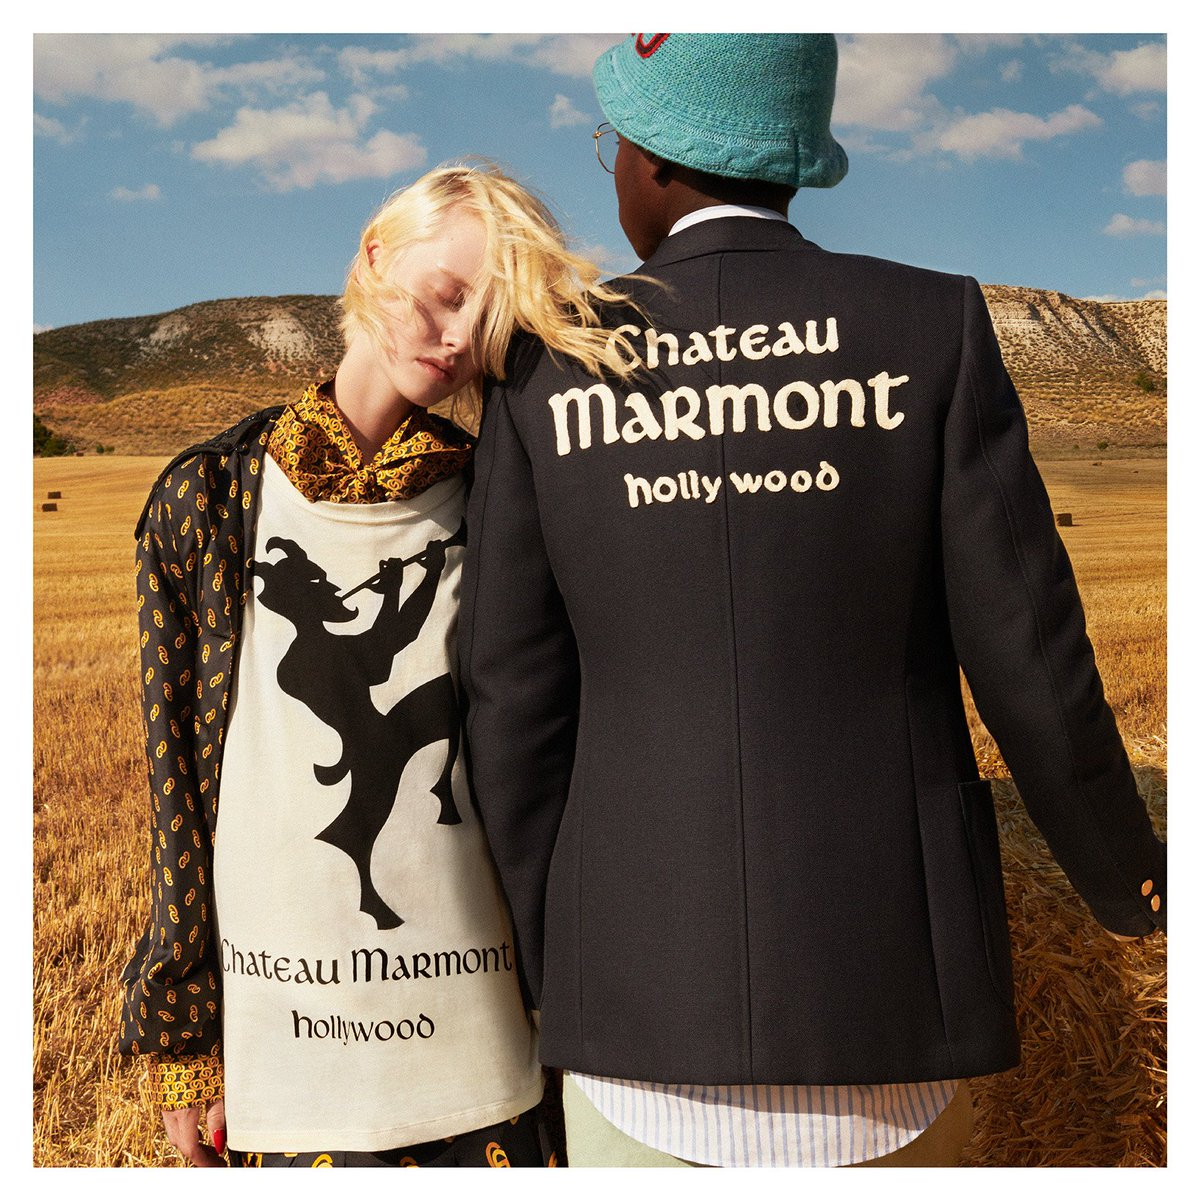 1ac515b8 A wool jacket embroidered with patches featuring Chateau Marmont's  lettering, and an oversize T-shirt printed with Pan, the mascot of the  famous hotel.